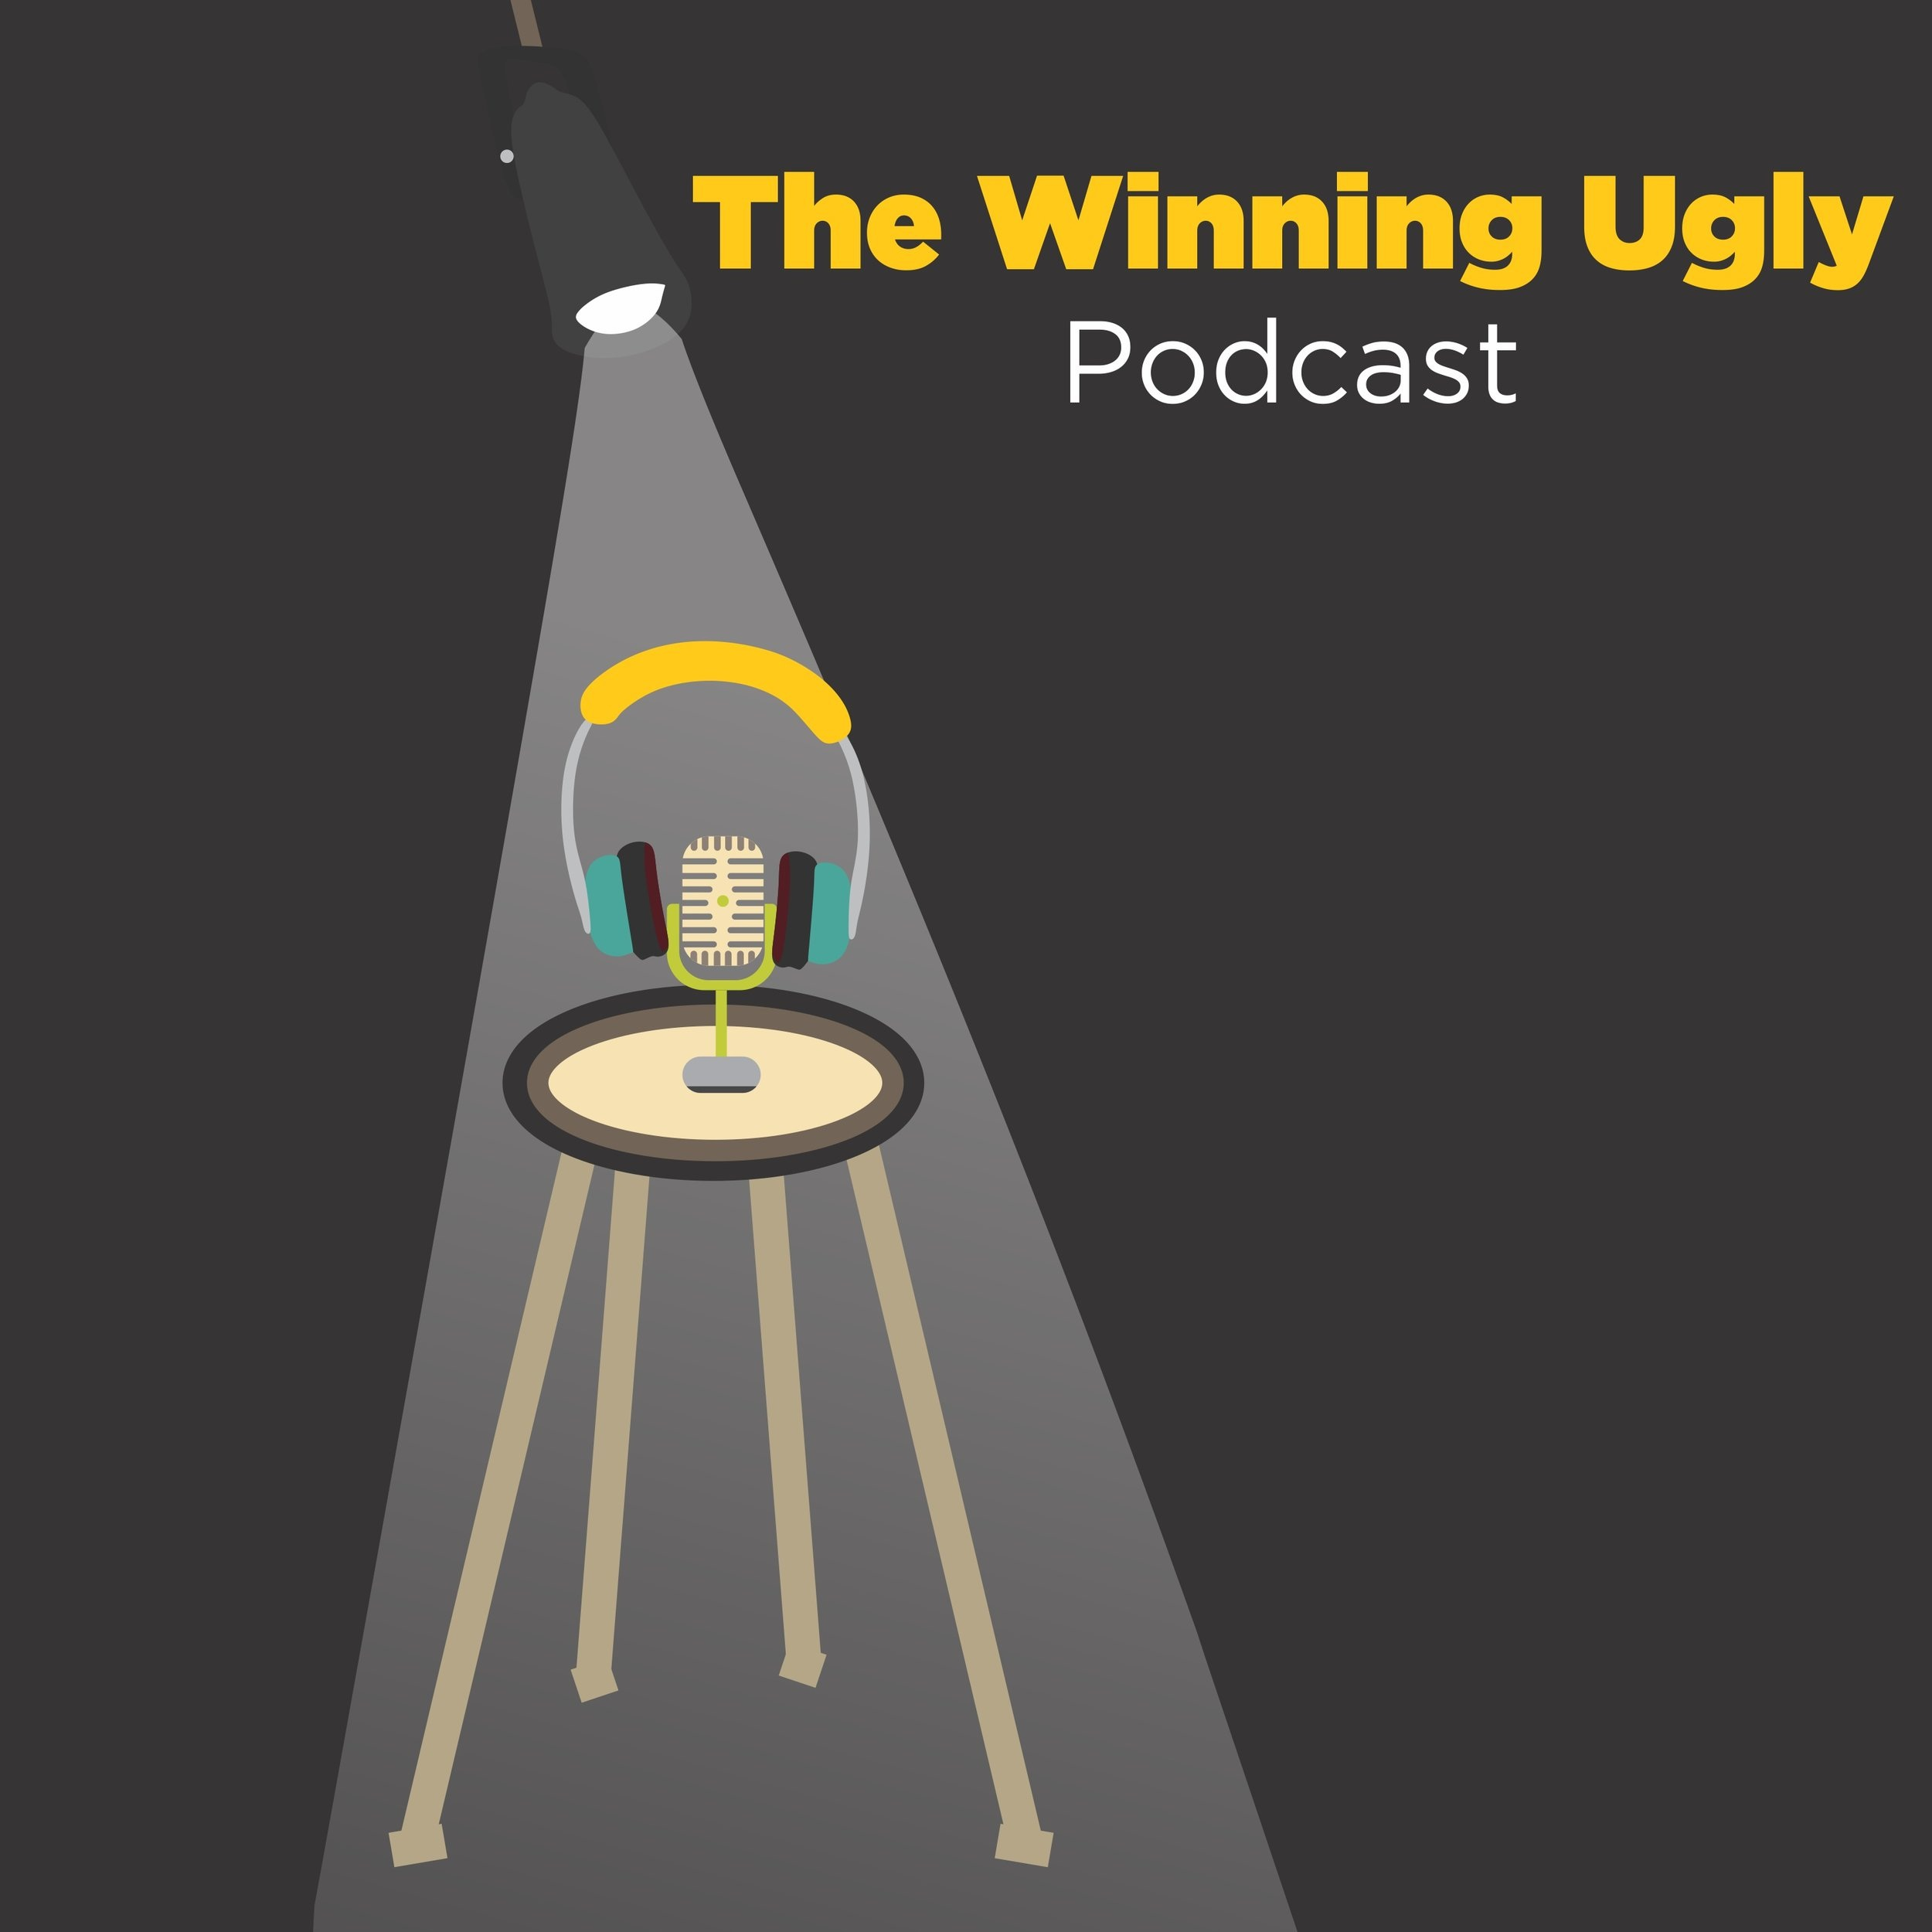 The+Winning+Ugly+Podcast+-+Design+Project+-+Modified+4.jpg